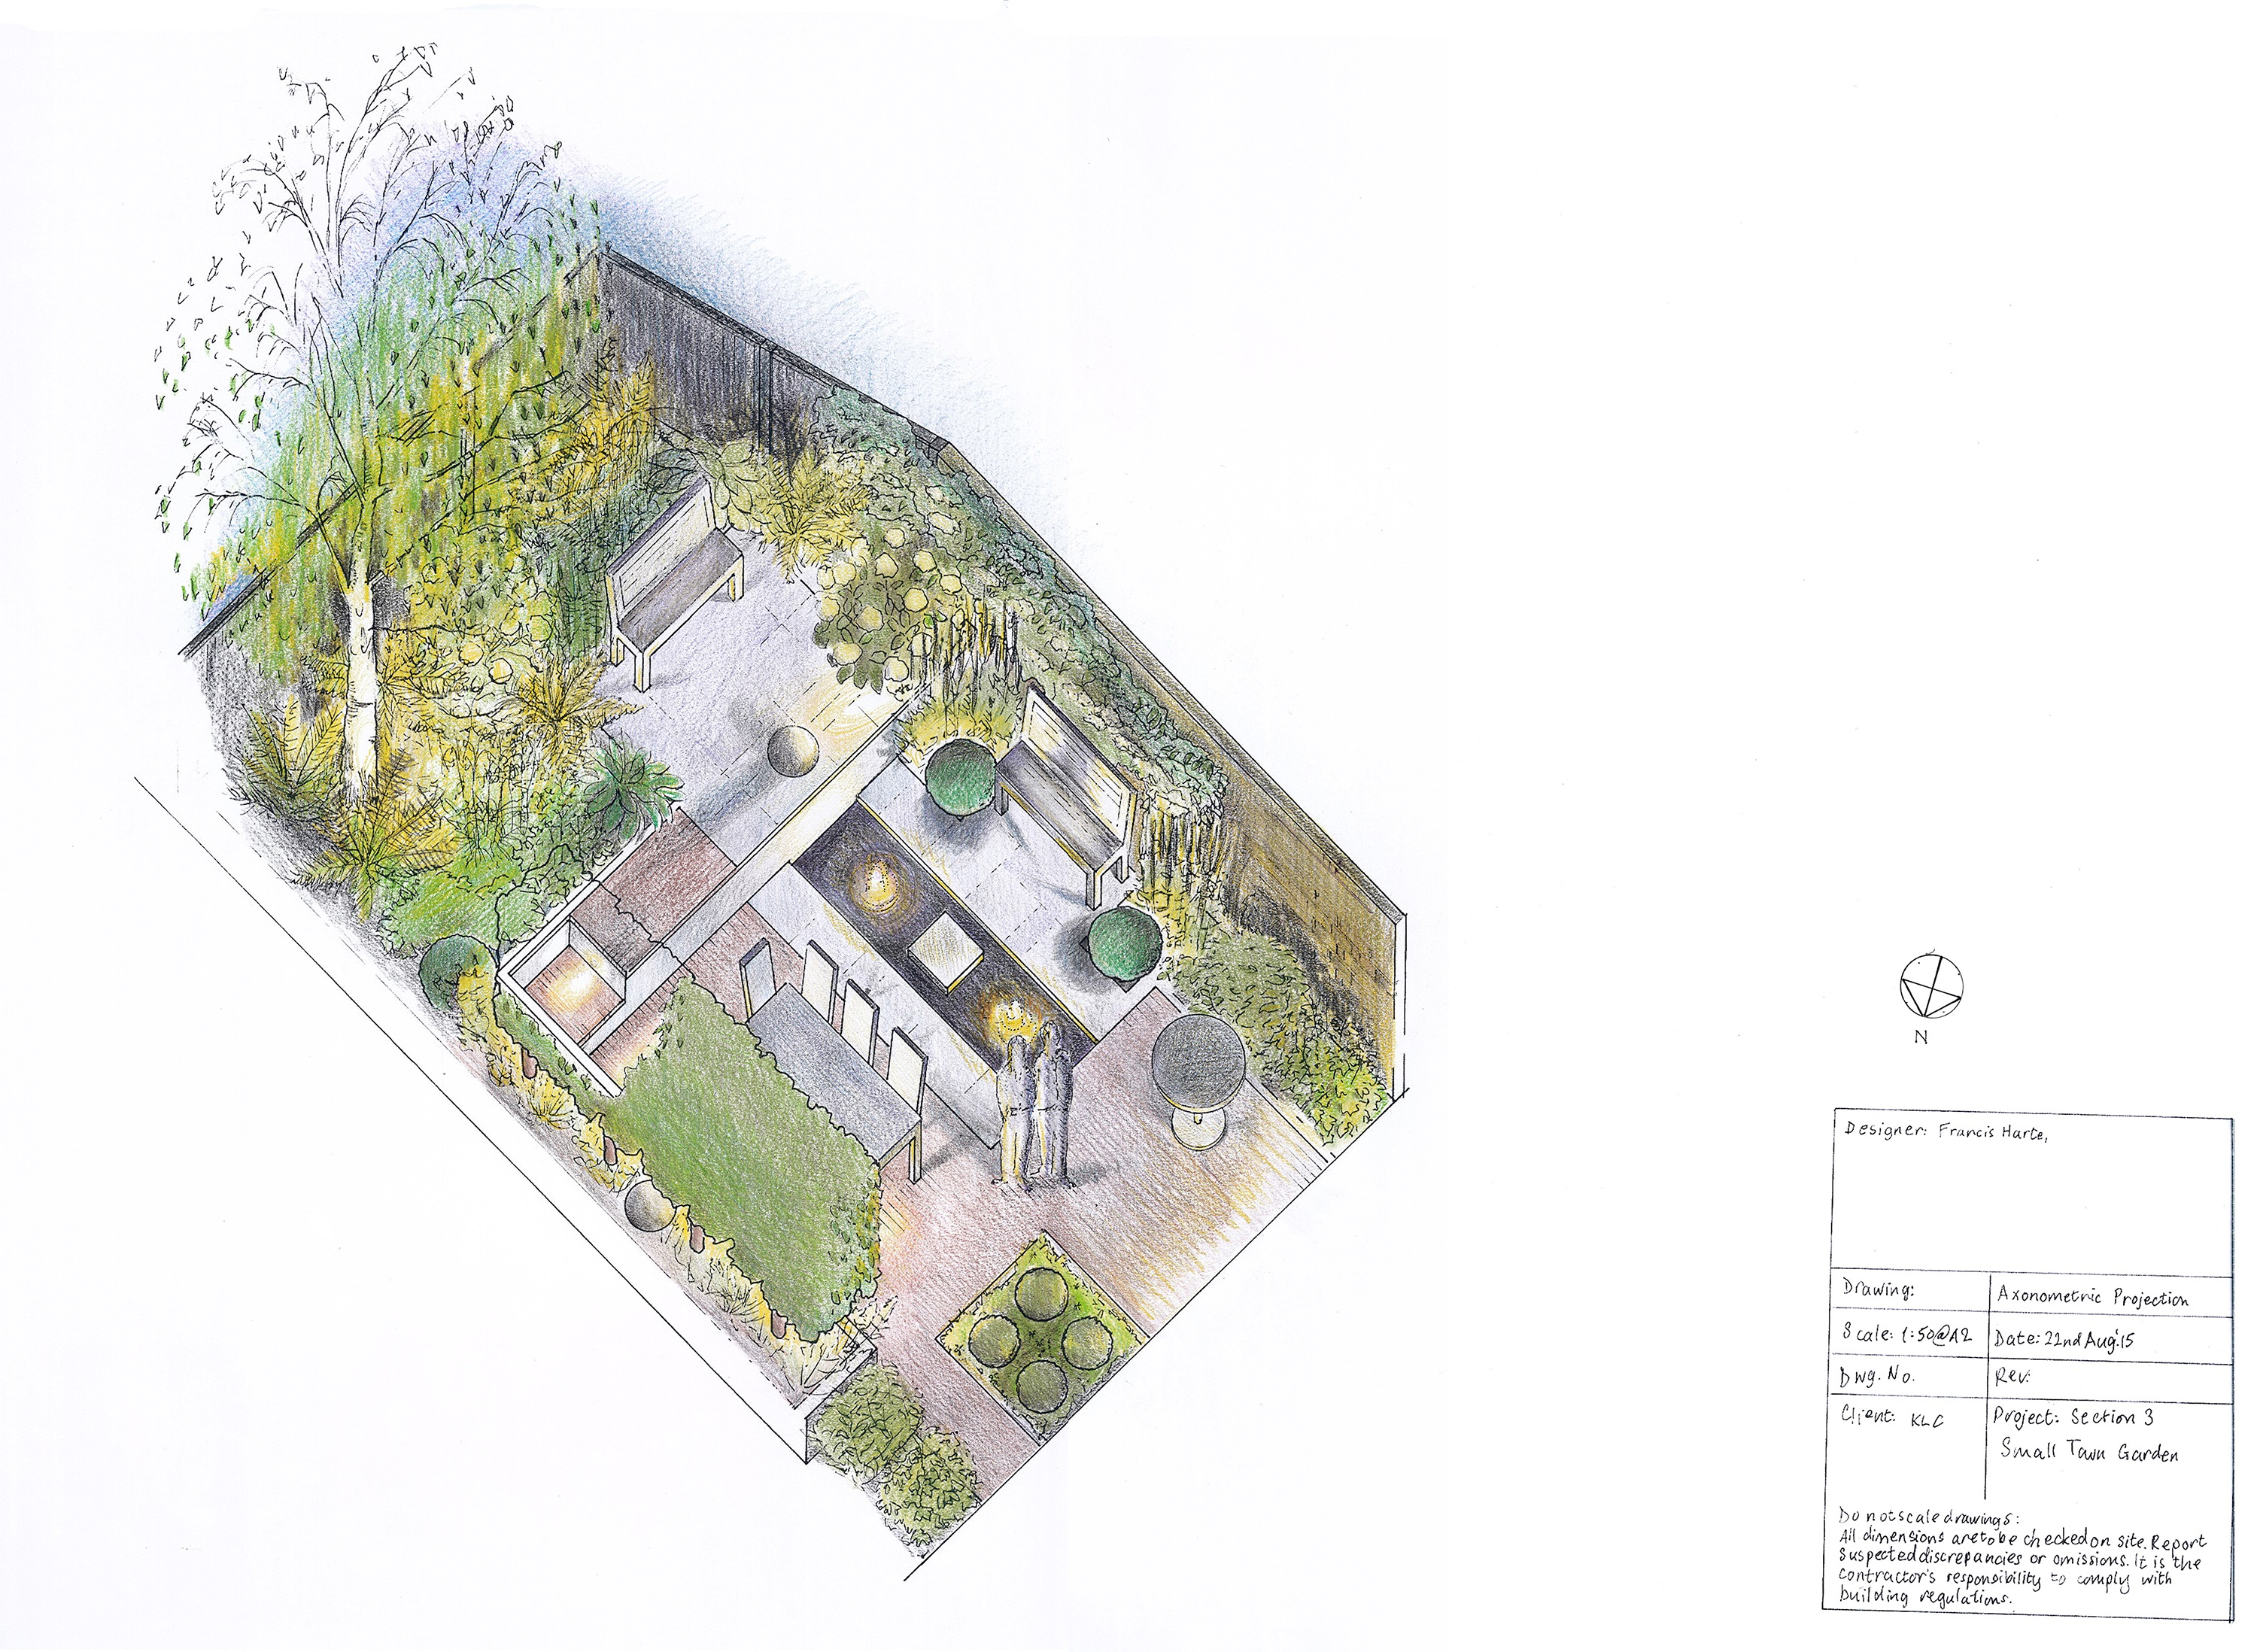 3.2 Small Town Garden Axonometric by Francis Harte